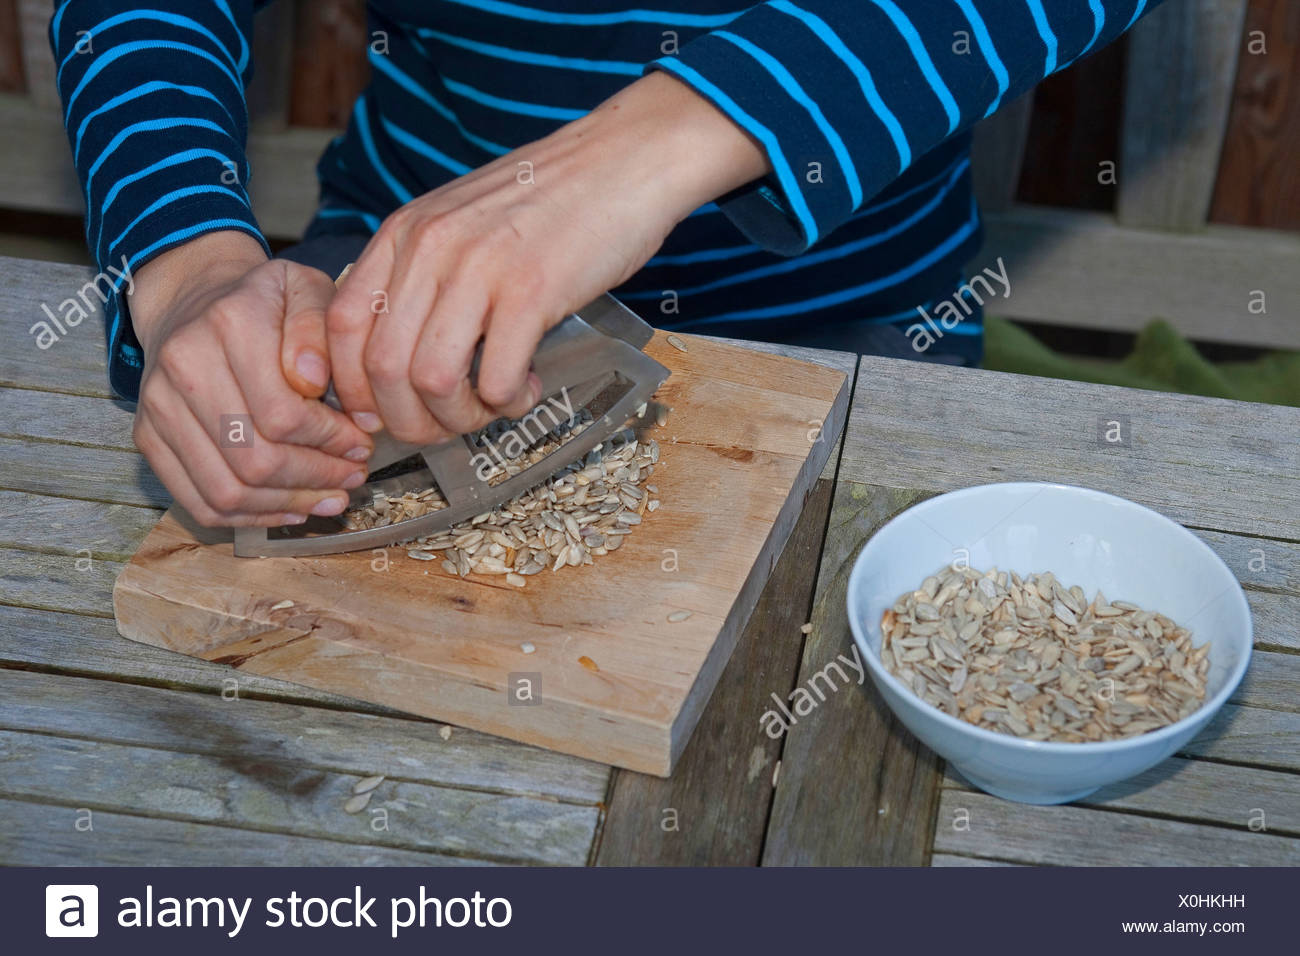 boy making pesto from self-collected walnuts and sunflower seeds, olive oil and parmesan cheese, sunflower seeds are hackled, Germany - Stock Image